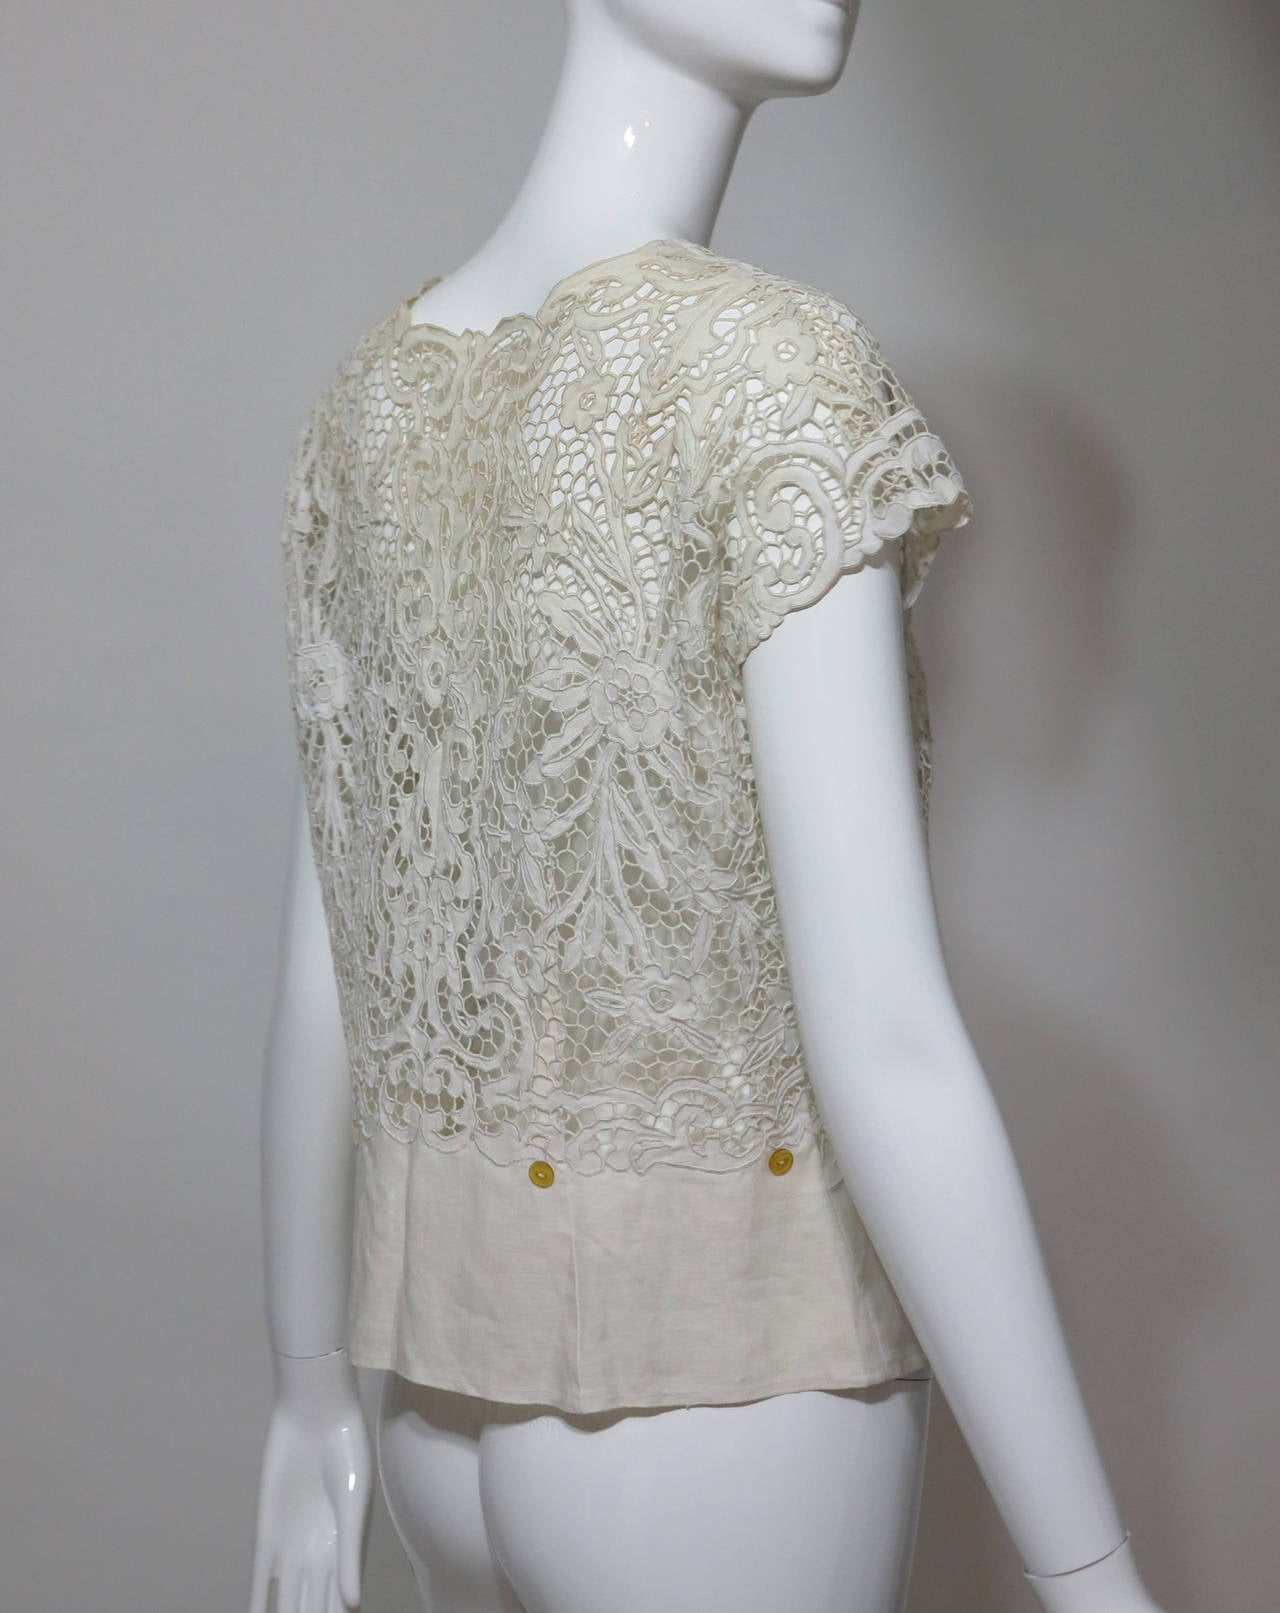 Madeira handmade cut work lace embroidered blouse in off white 1950s In Excellent Condition For Sale In West Palm Beach, FL